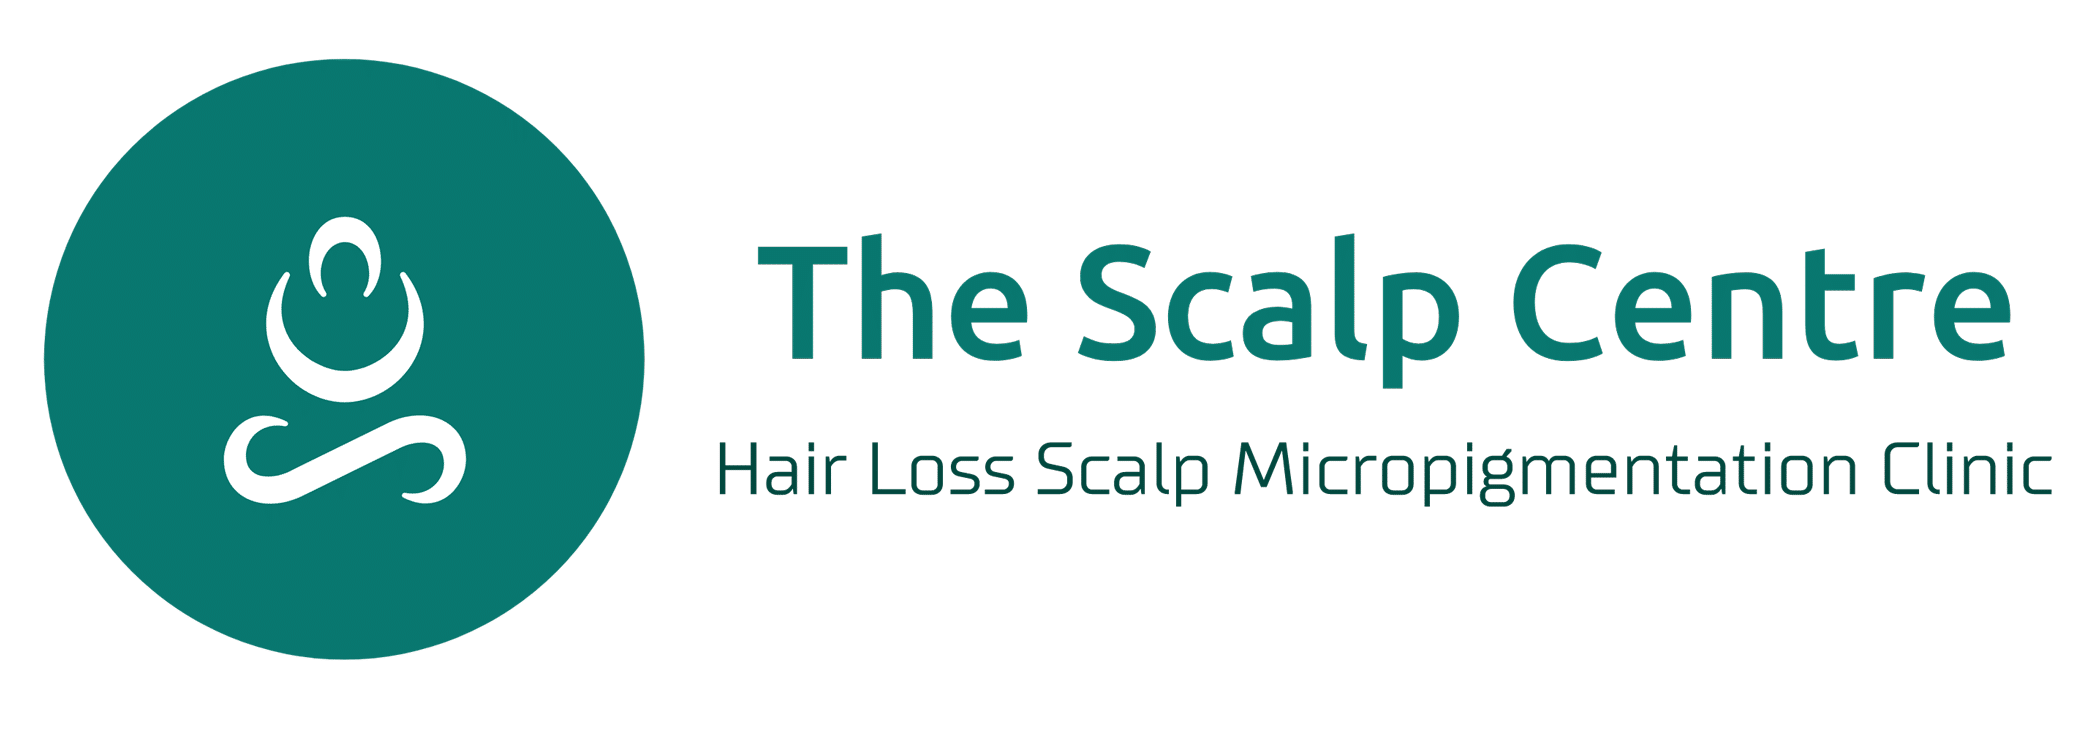 The Scalp Centre